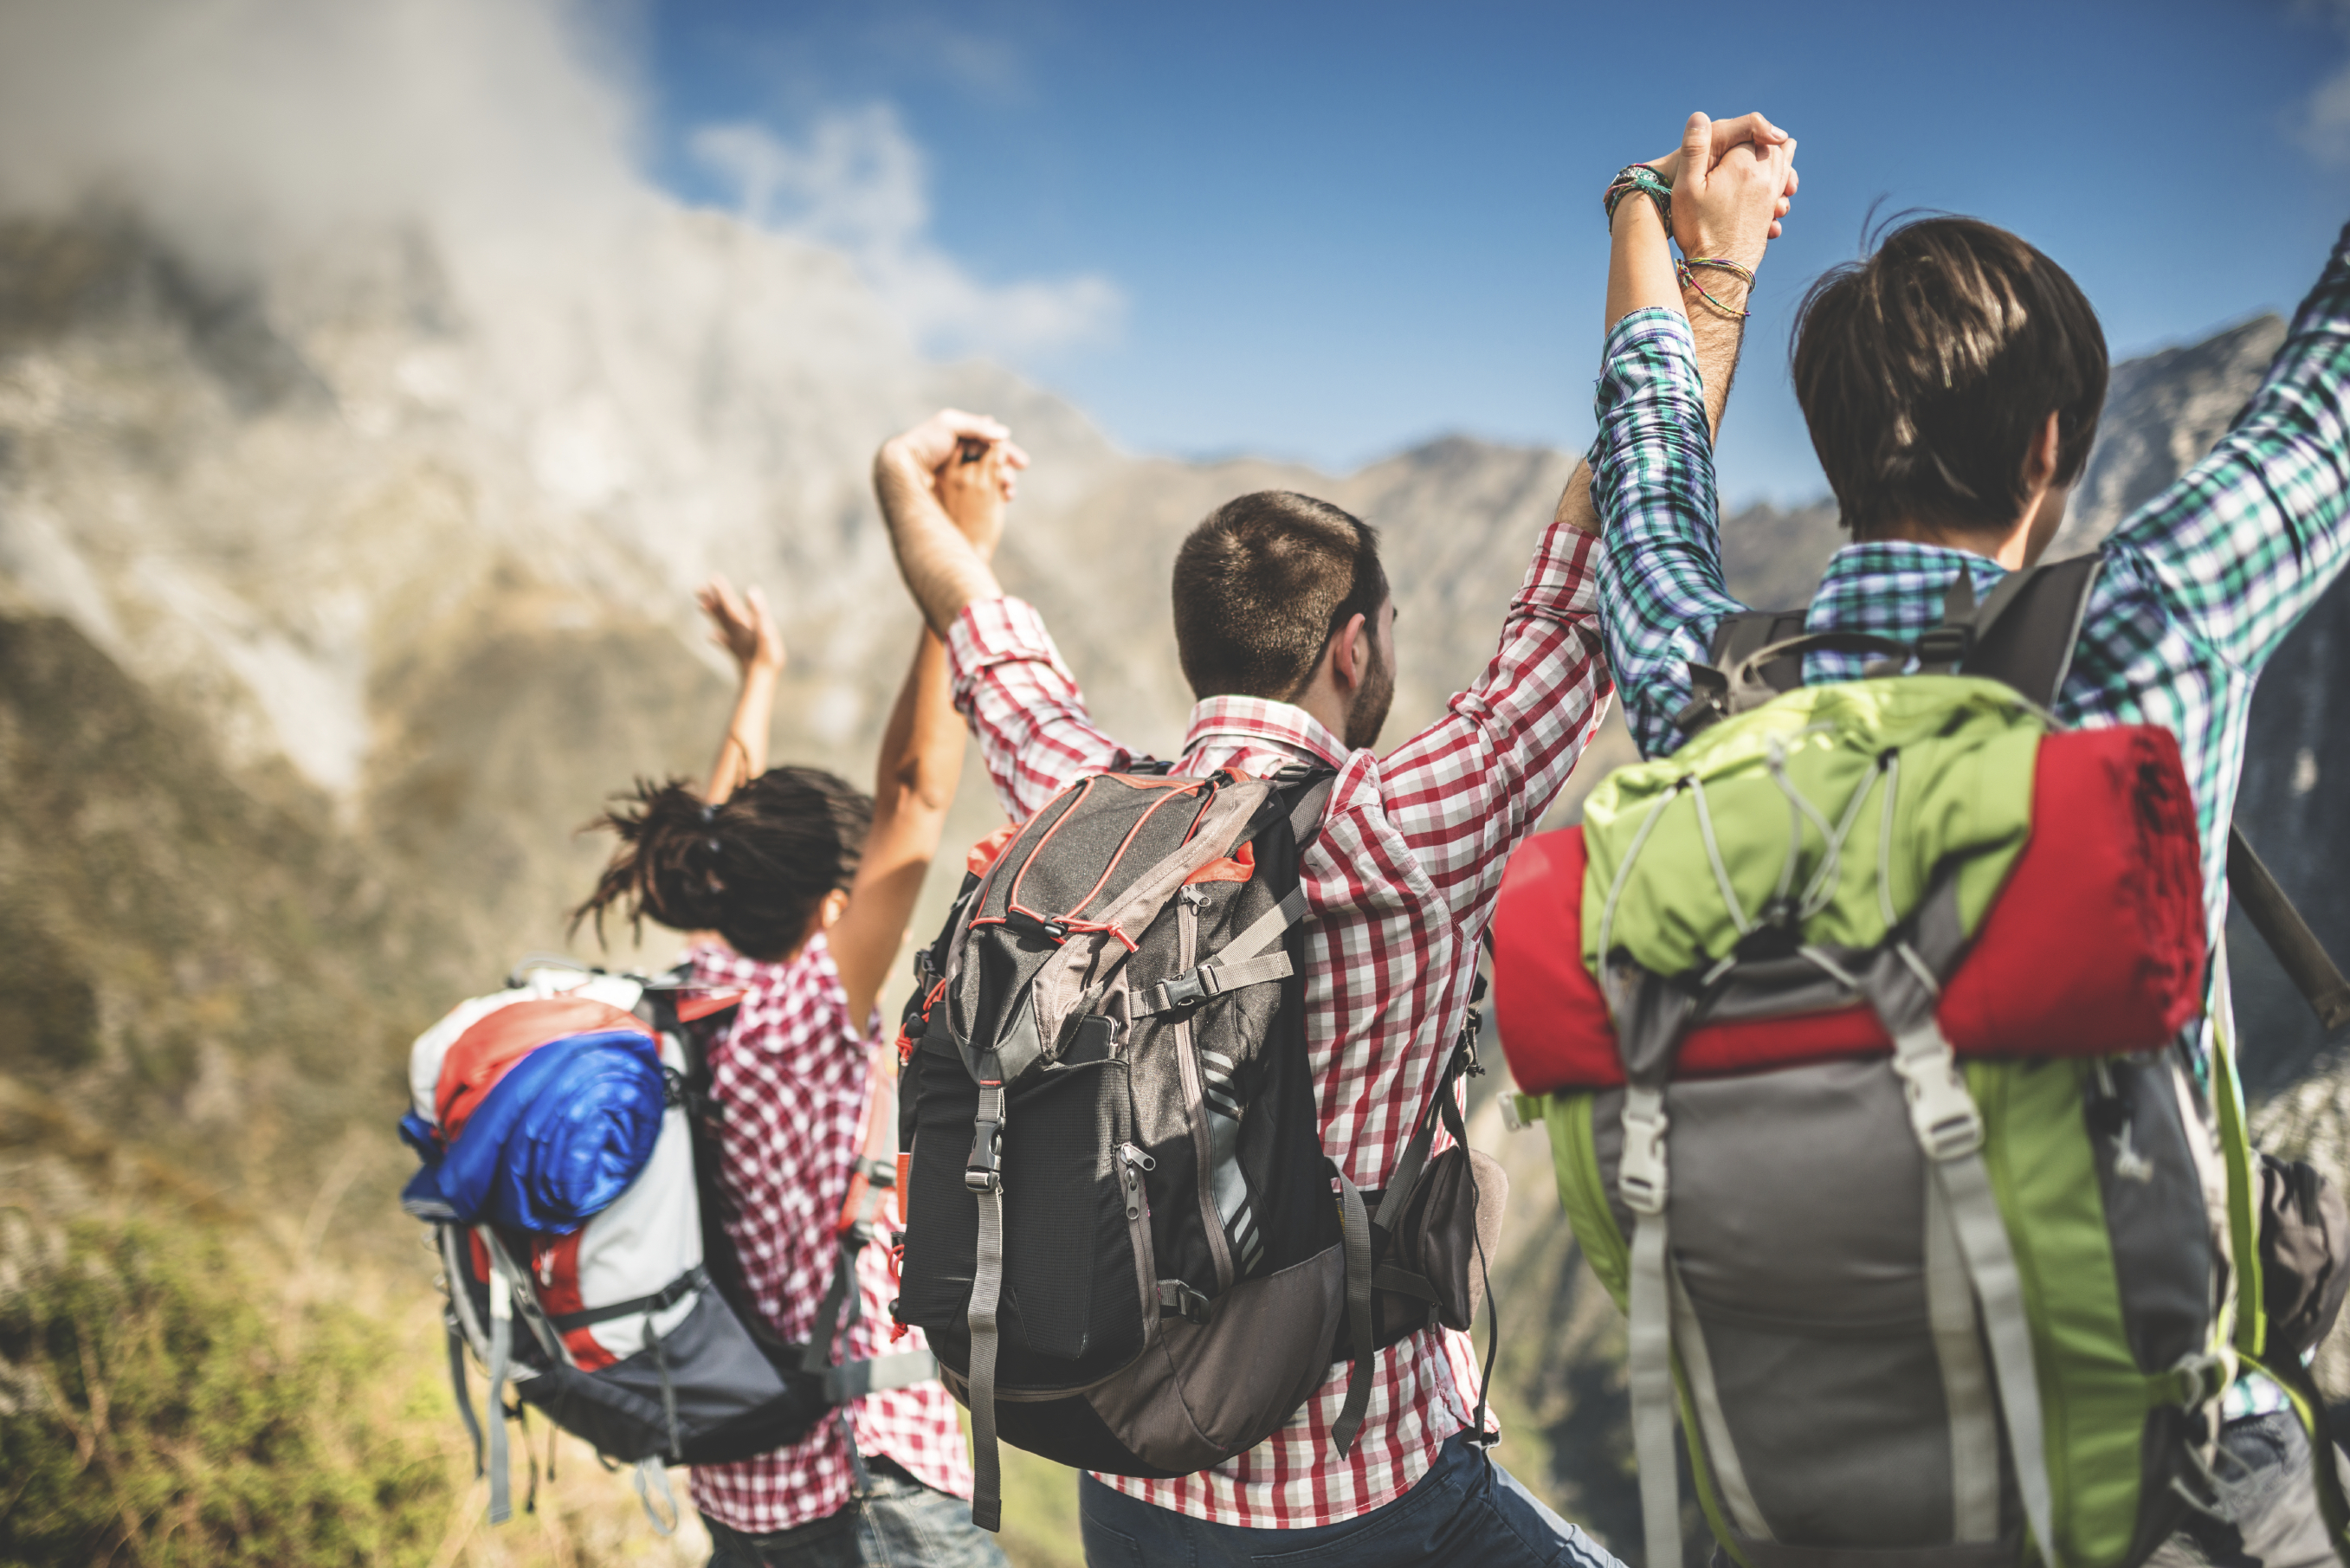 Top tips for travelling this summer on a student budget